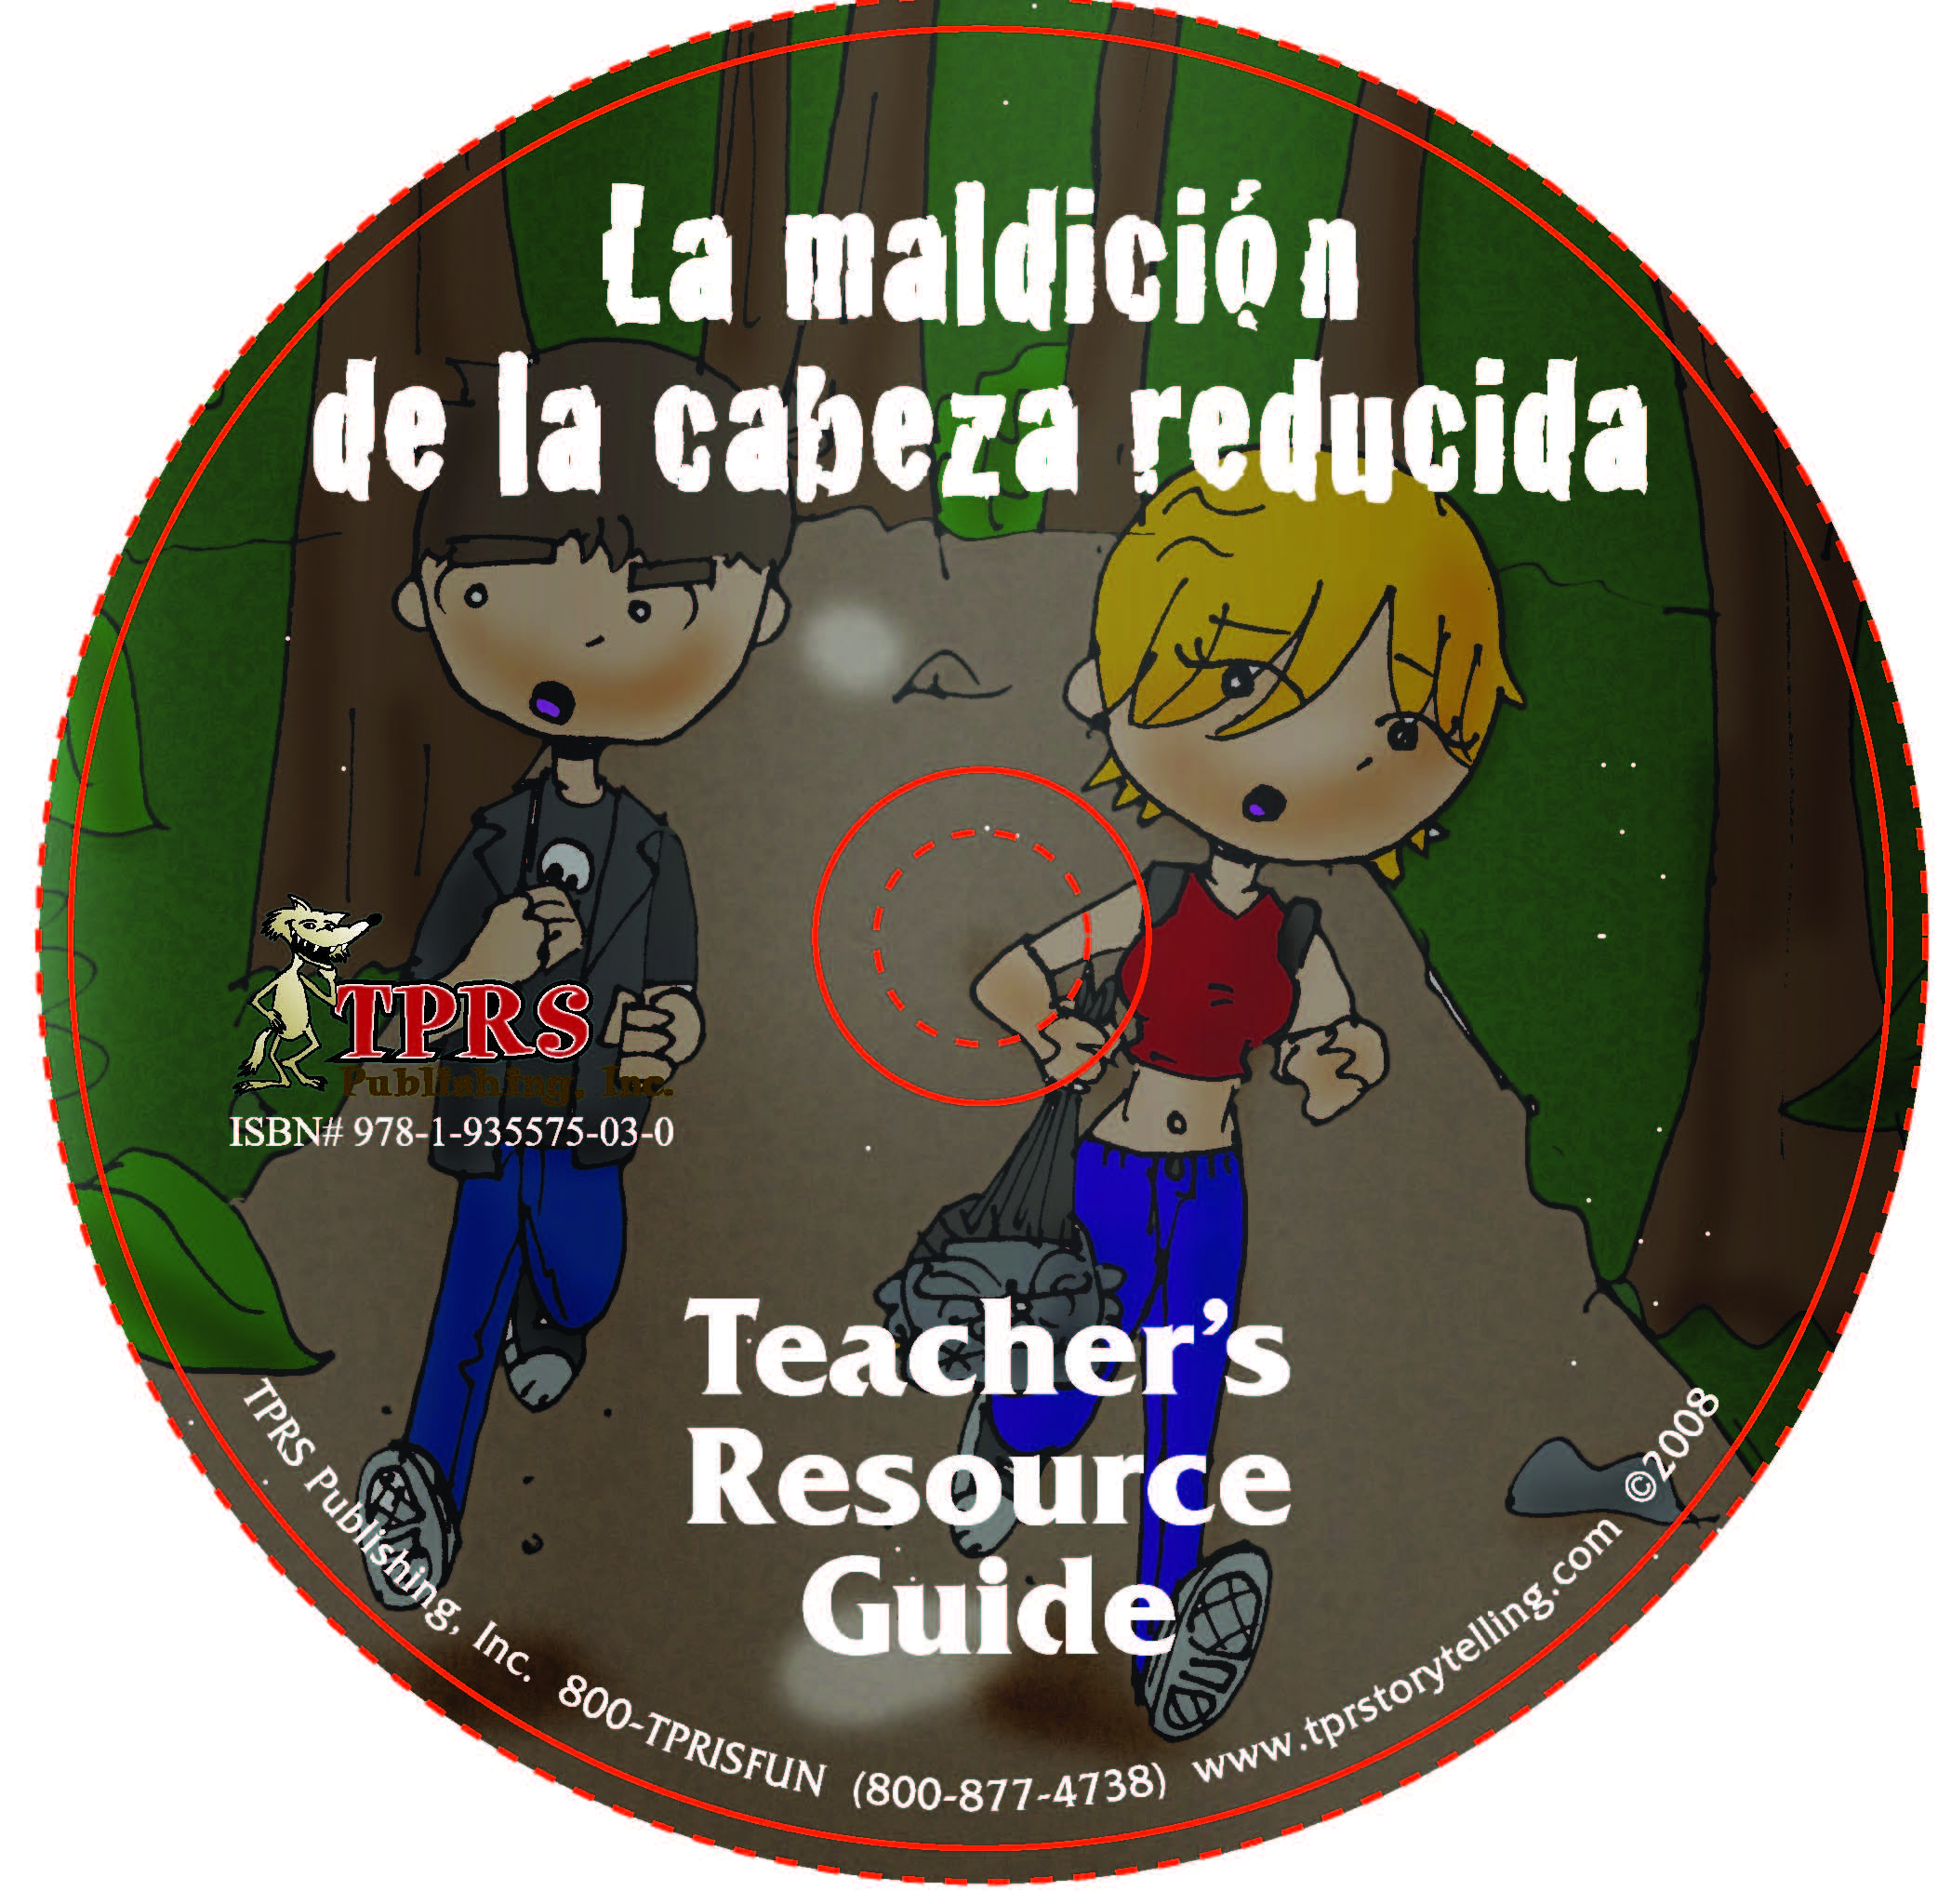 La maldición de la cabeza reducida – Teacher's Guide on CD